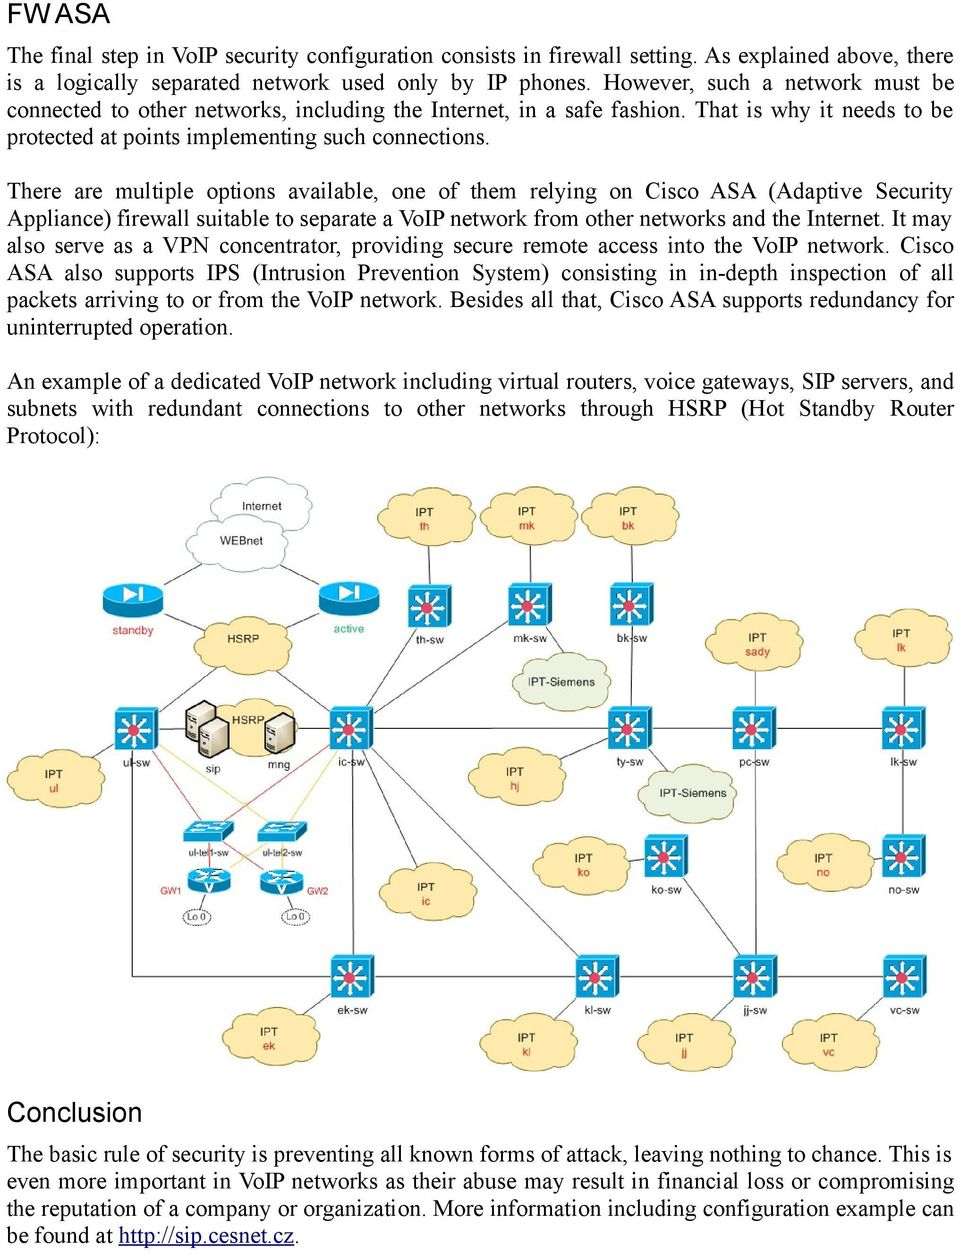 There are multiple options available, one of them relying on Cisco ASA (Adaptive Security Appliance) firewall suitable to separate a VoIP network from other networks and the Internet.